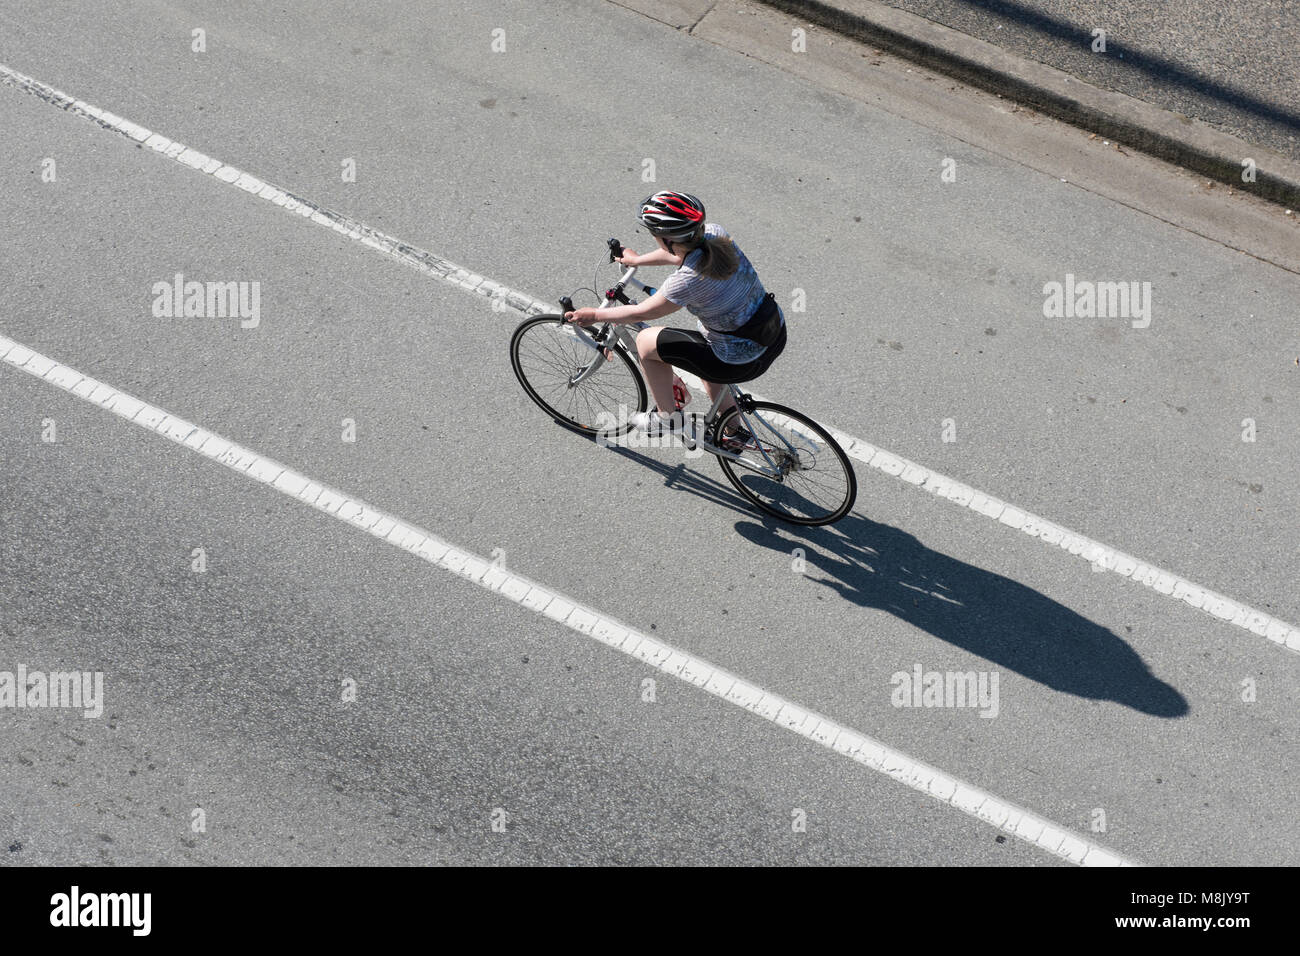 Bicyclist as seen from above traveling on the street via a bike lane, Vancouver City. - Stock Image